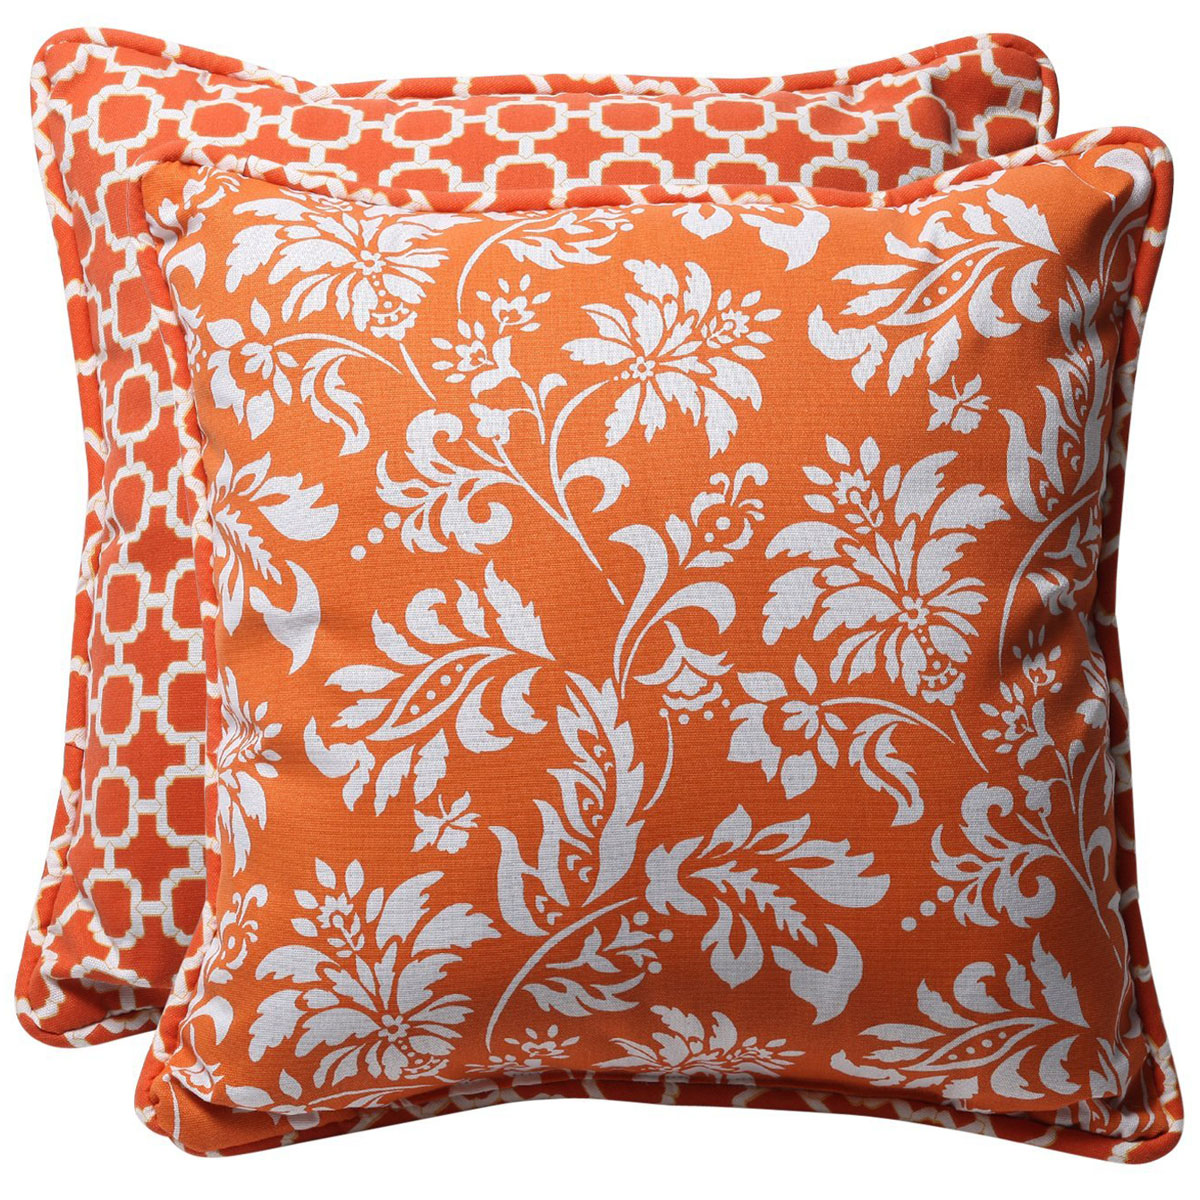 Orange Decorative Pillows Couch : Orange Living Room Accessories 2017 - 2018 Best Cars Reviews